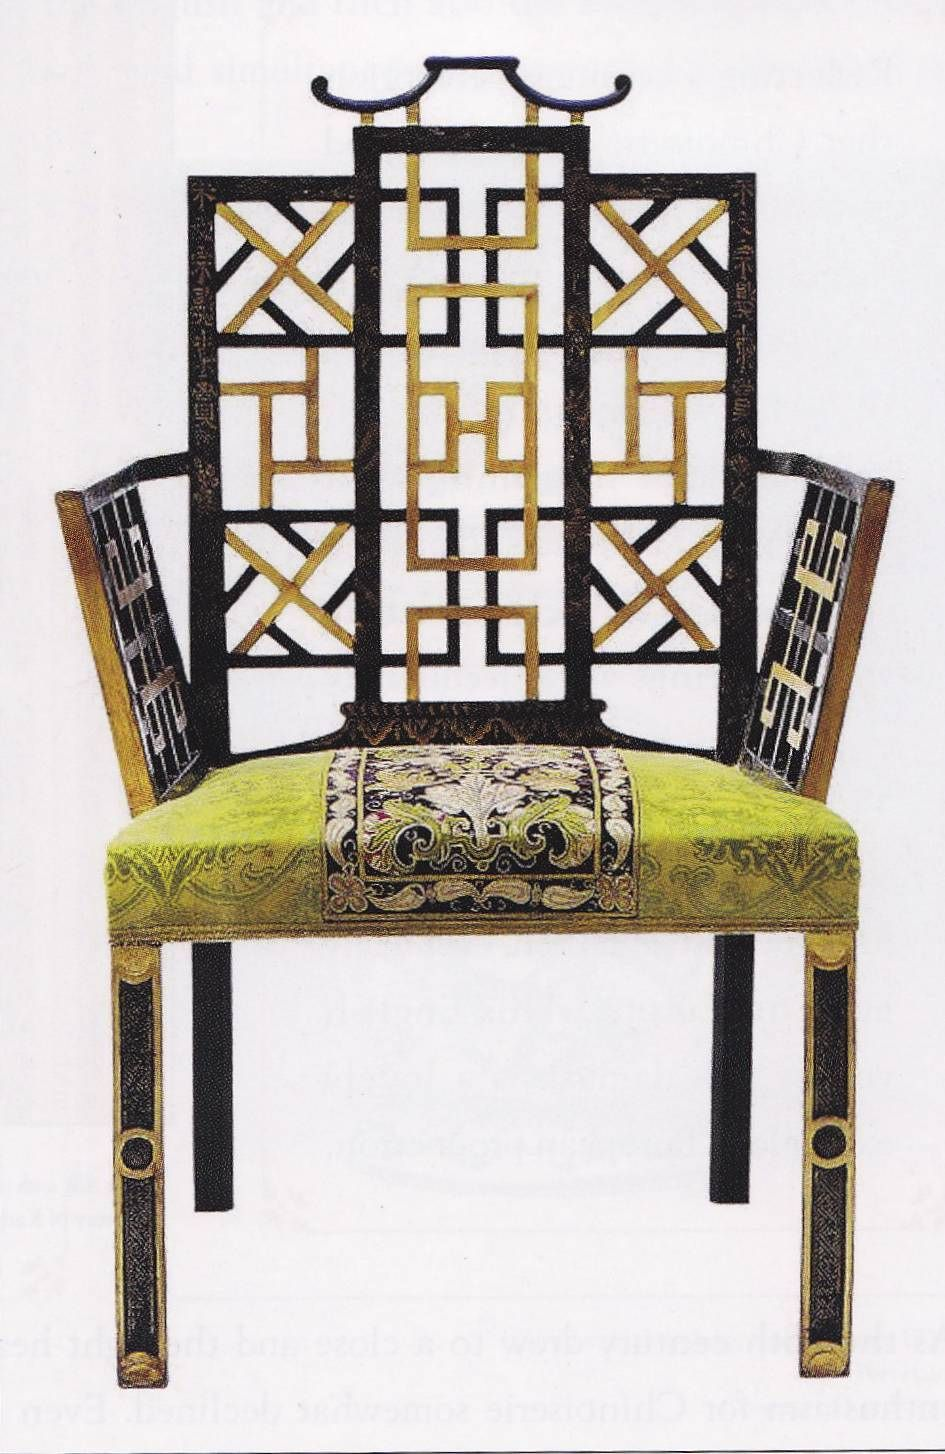 1754 Reupholstered Chinoiserie Chair From The Chinese Bedroom At Badminton  House. Beechwood Frame, Gilt And Japanned